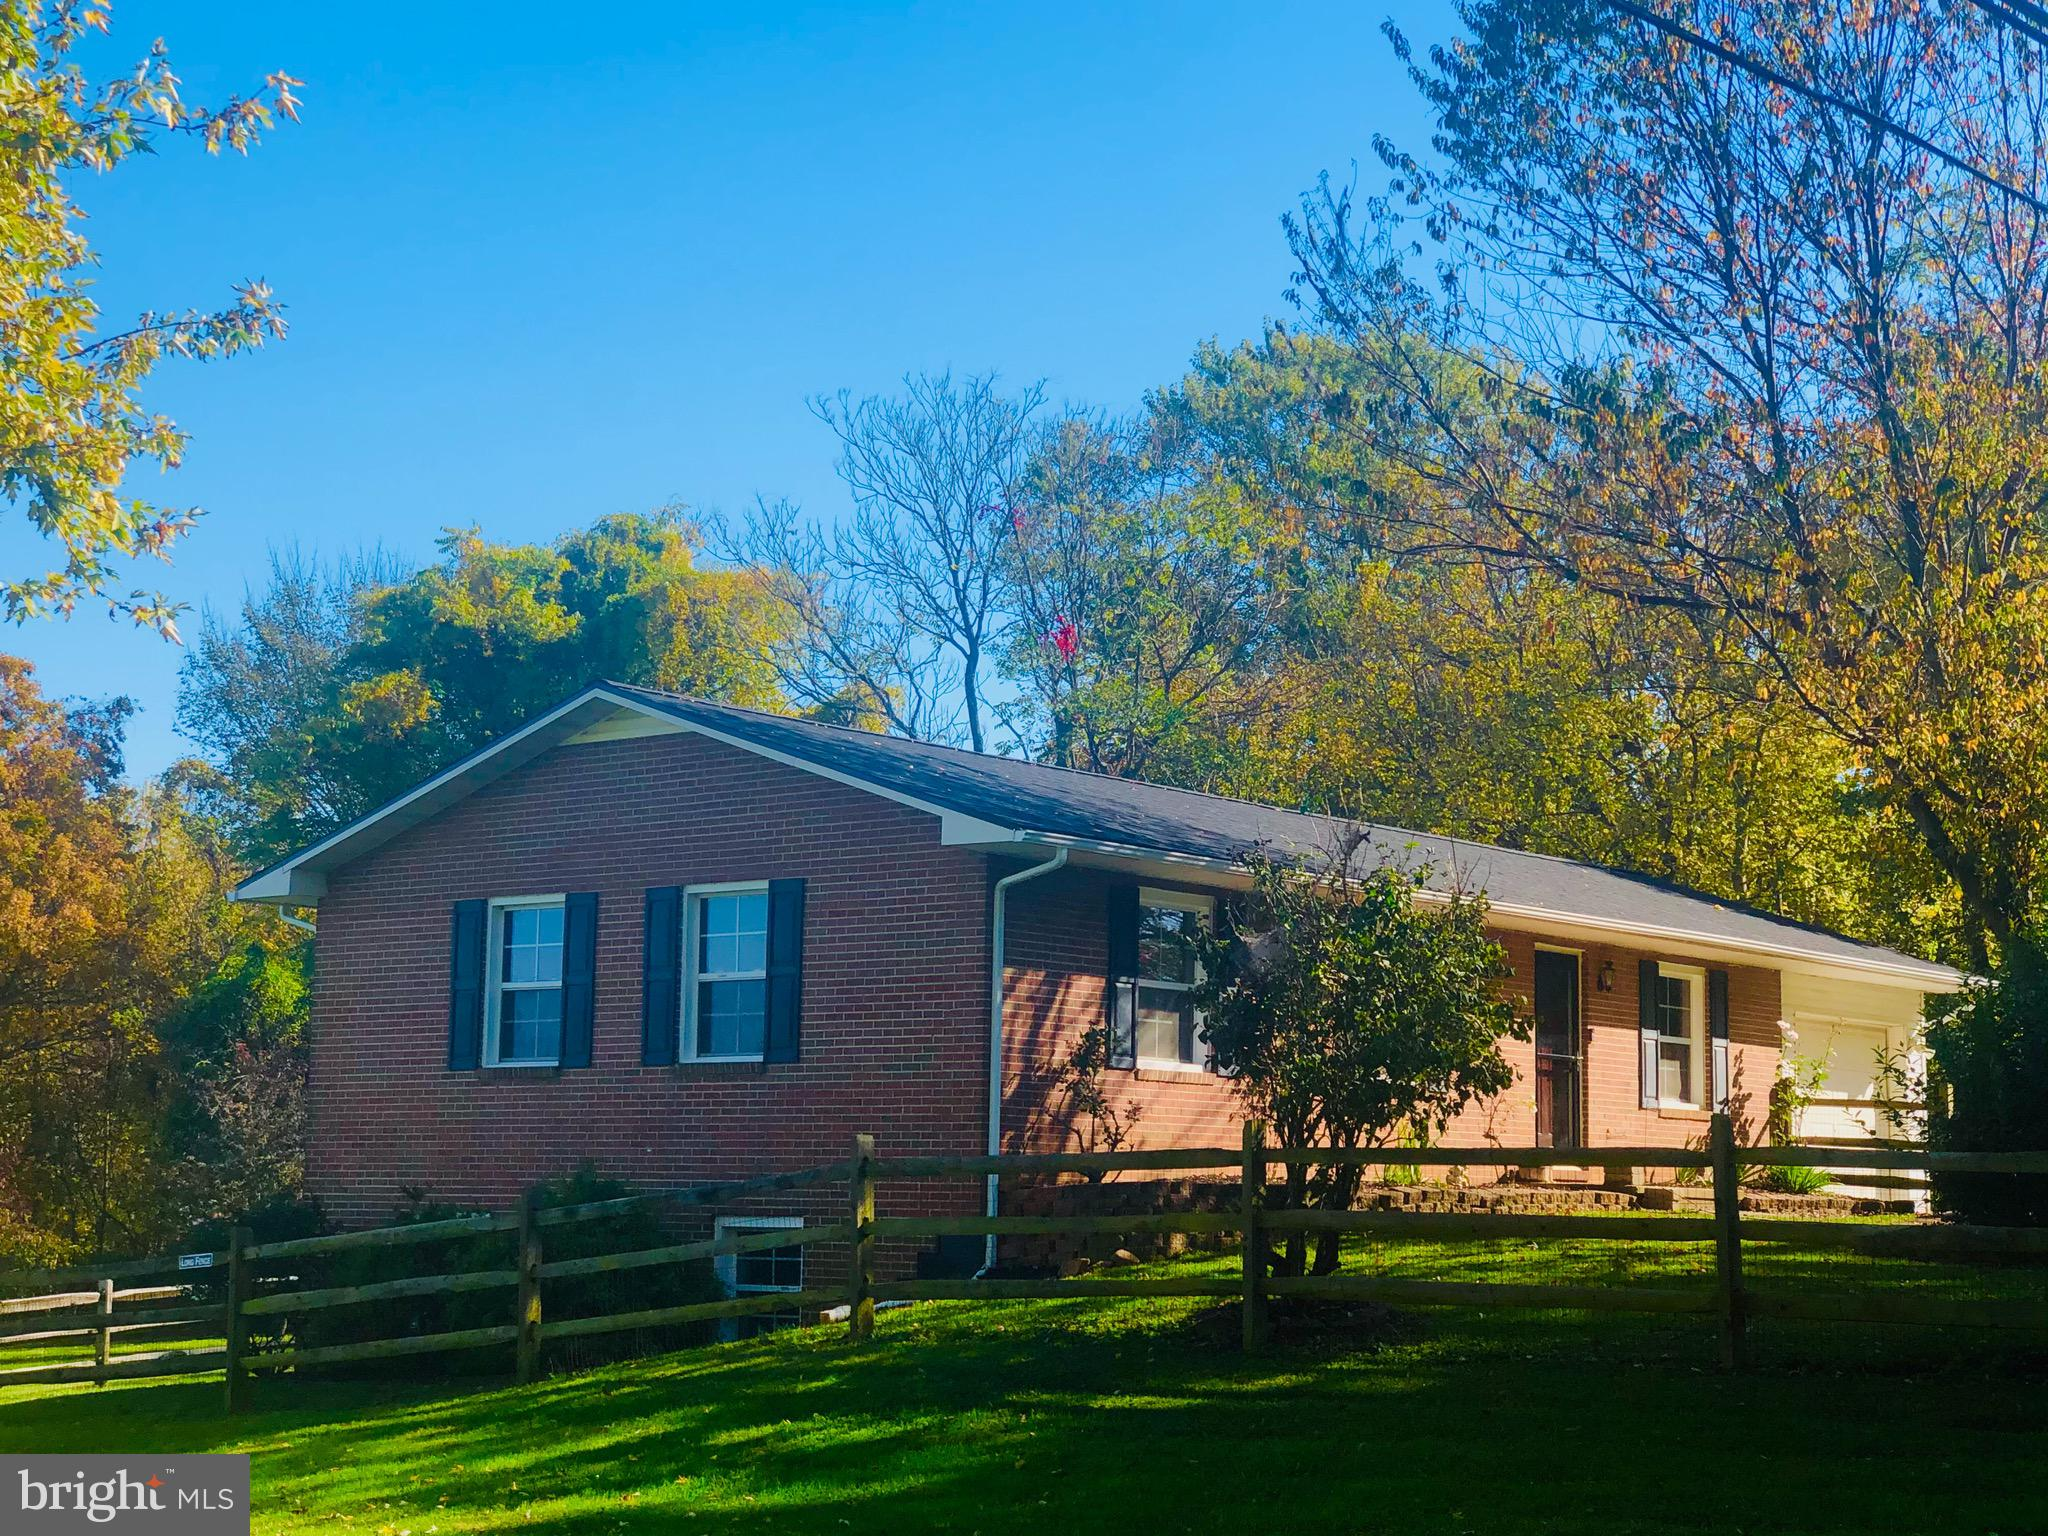 1004 King Lear Dr, Charles Town, WV, 25414